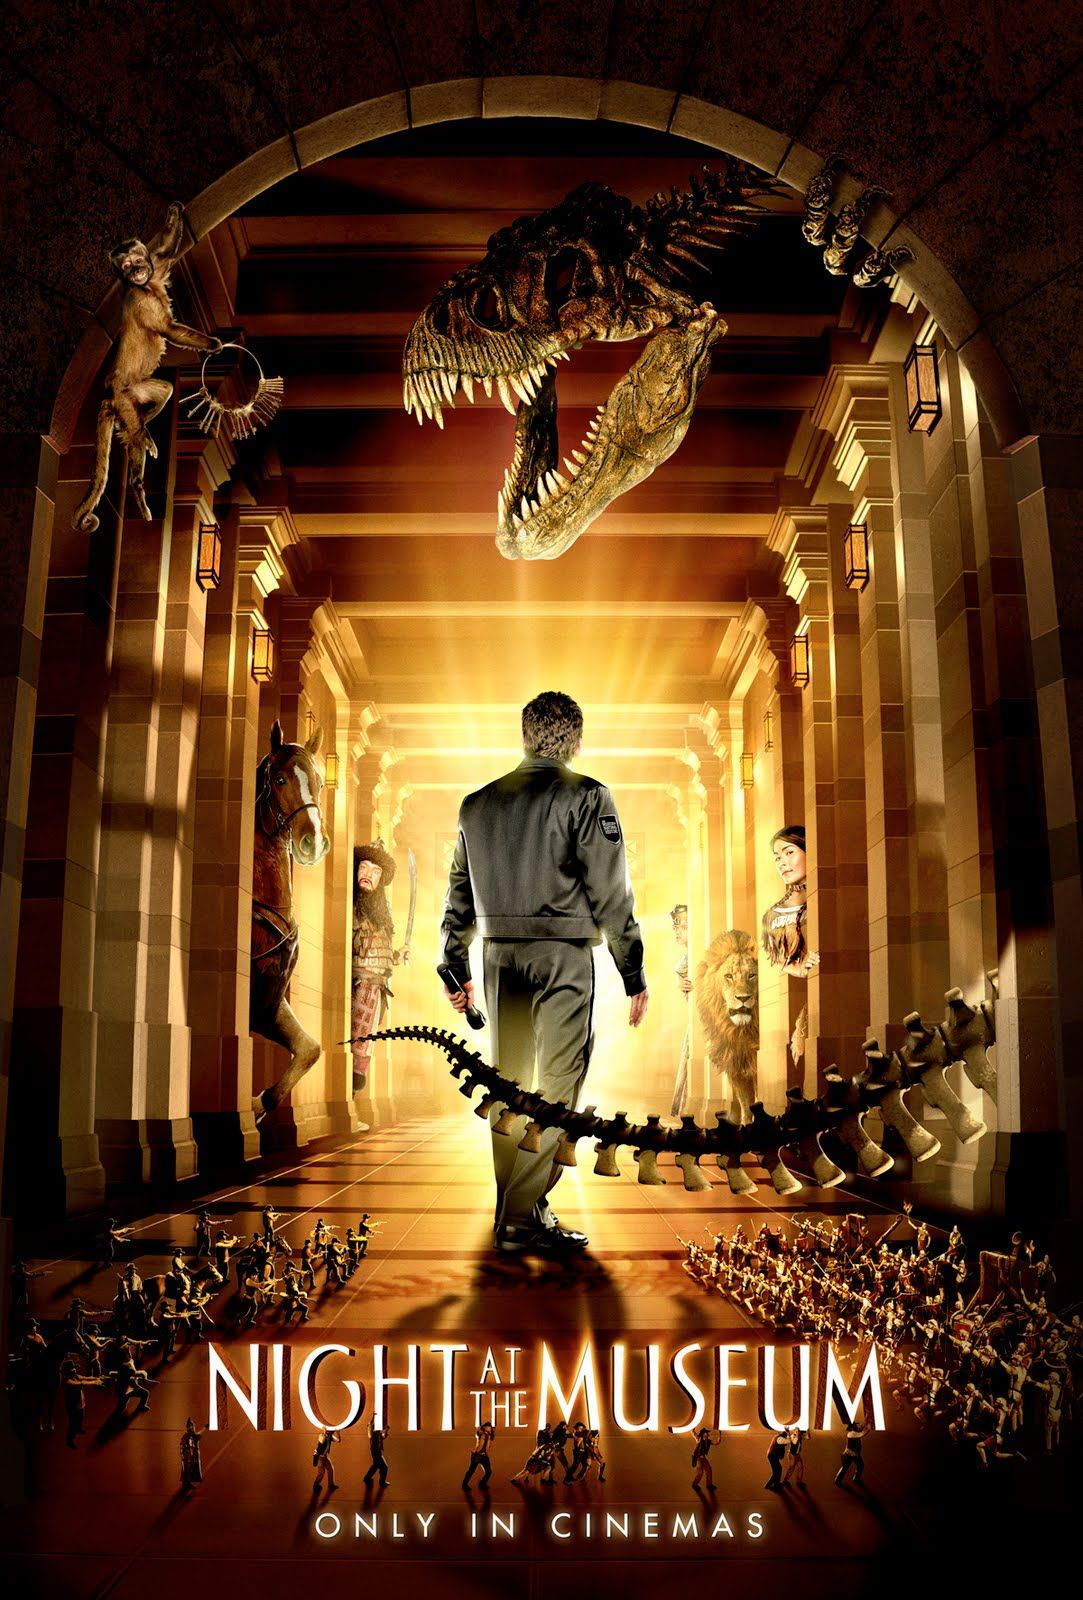 Night at the museum Fantasy based on a